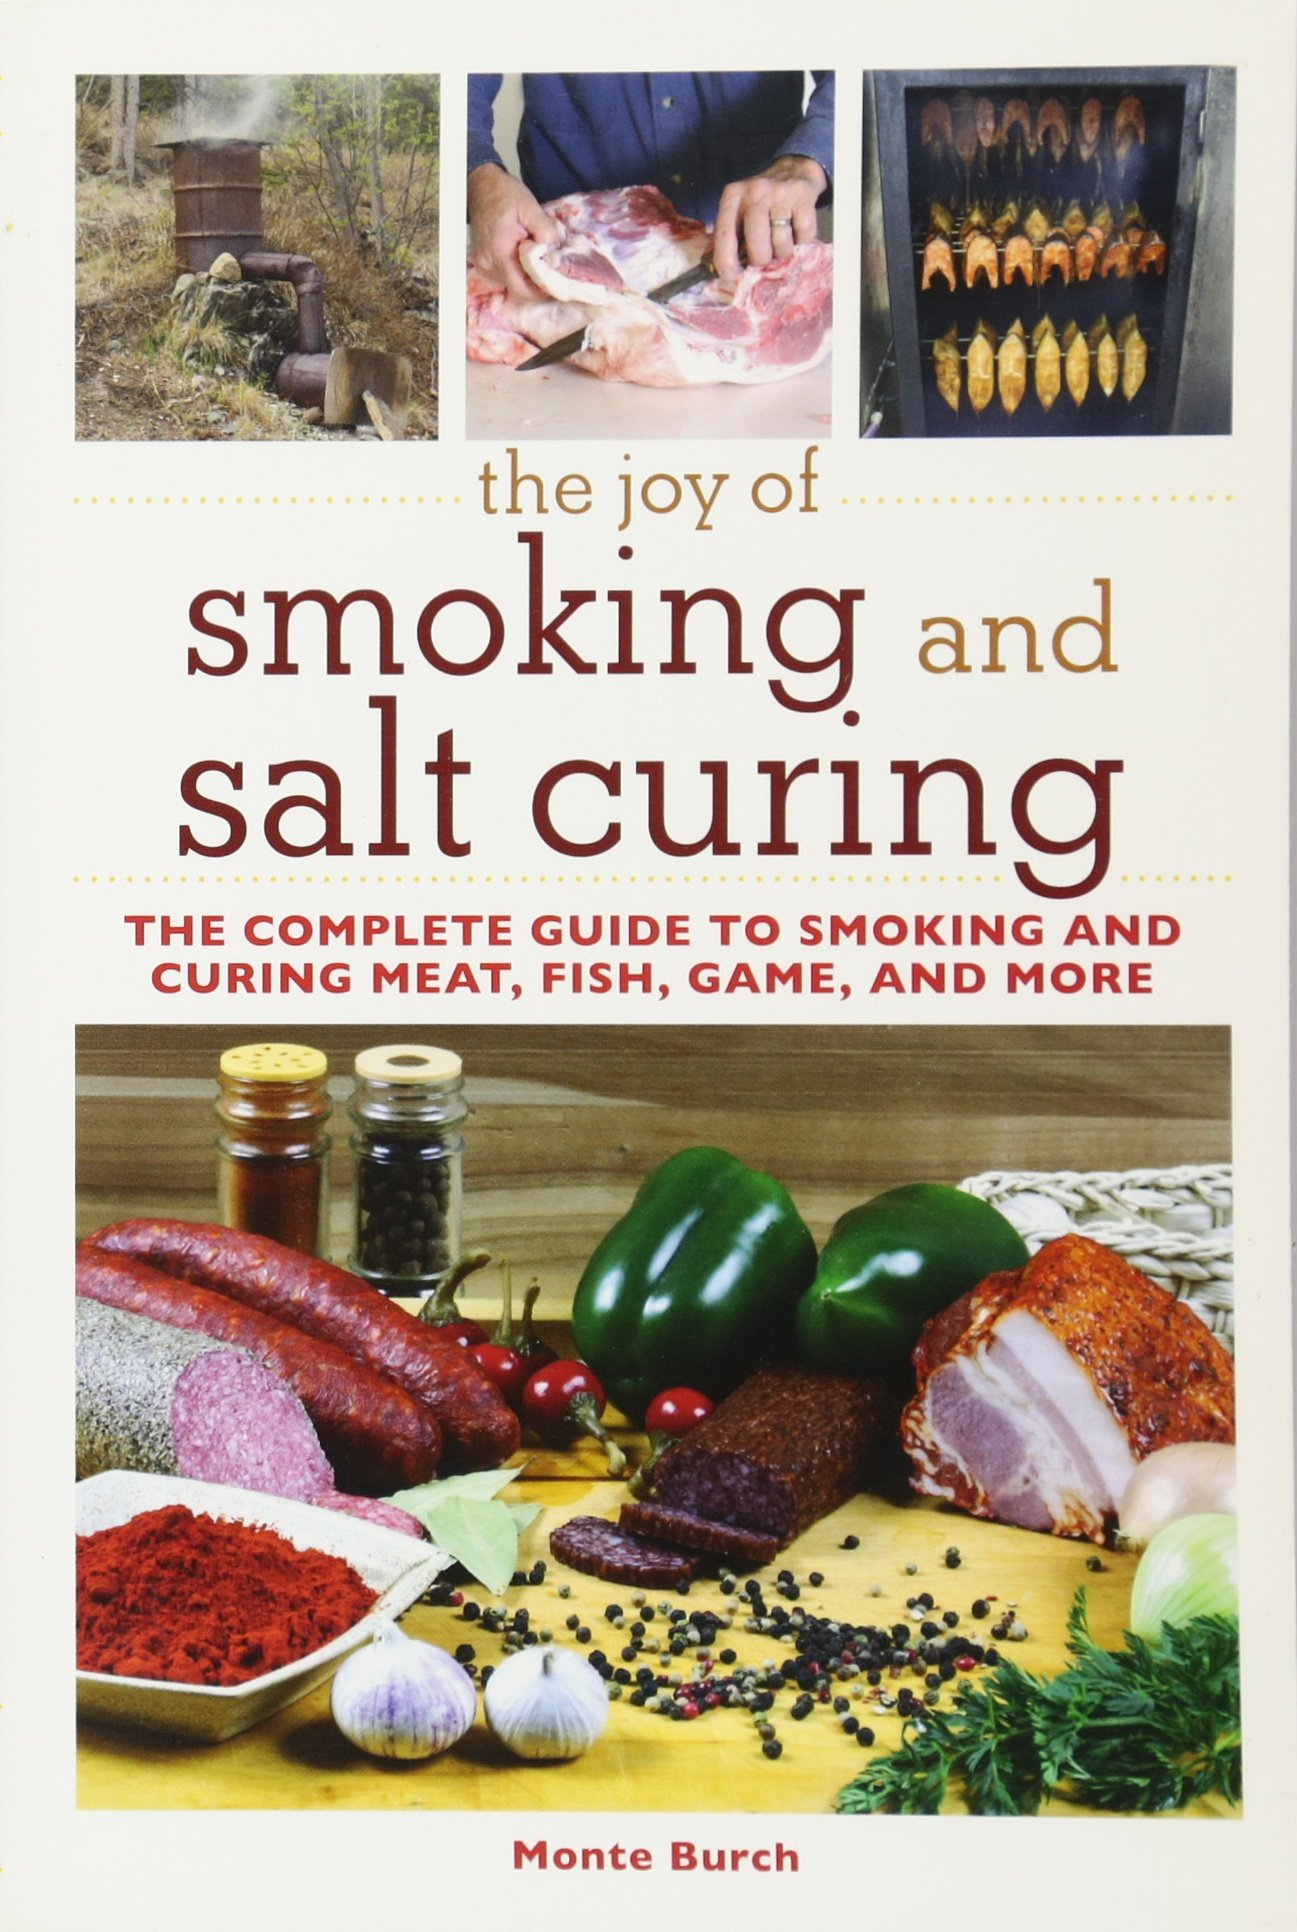 Download The Joy of Smoking and Salt Curing: The Complete Guide to Smoking and Curing Meat, Fish, Game, and More (The Joy of Series) pdf epub